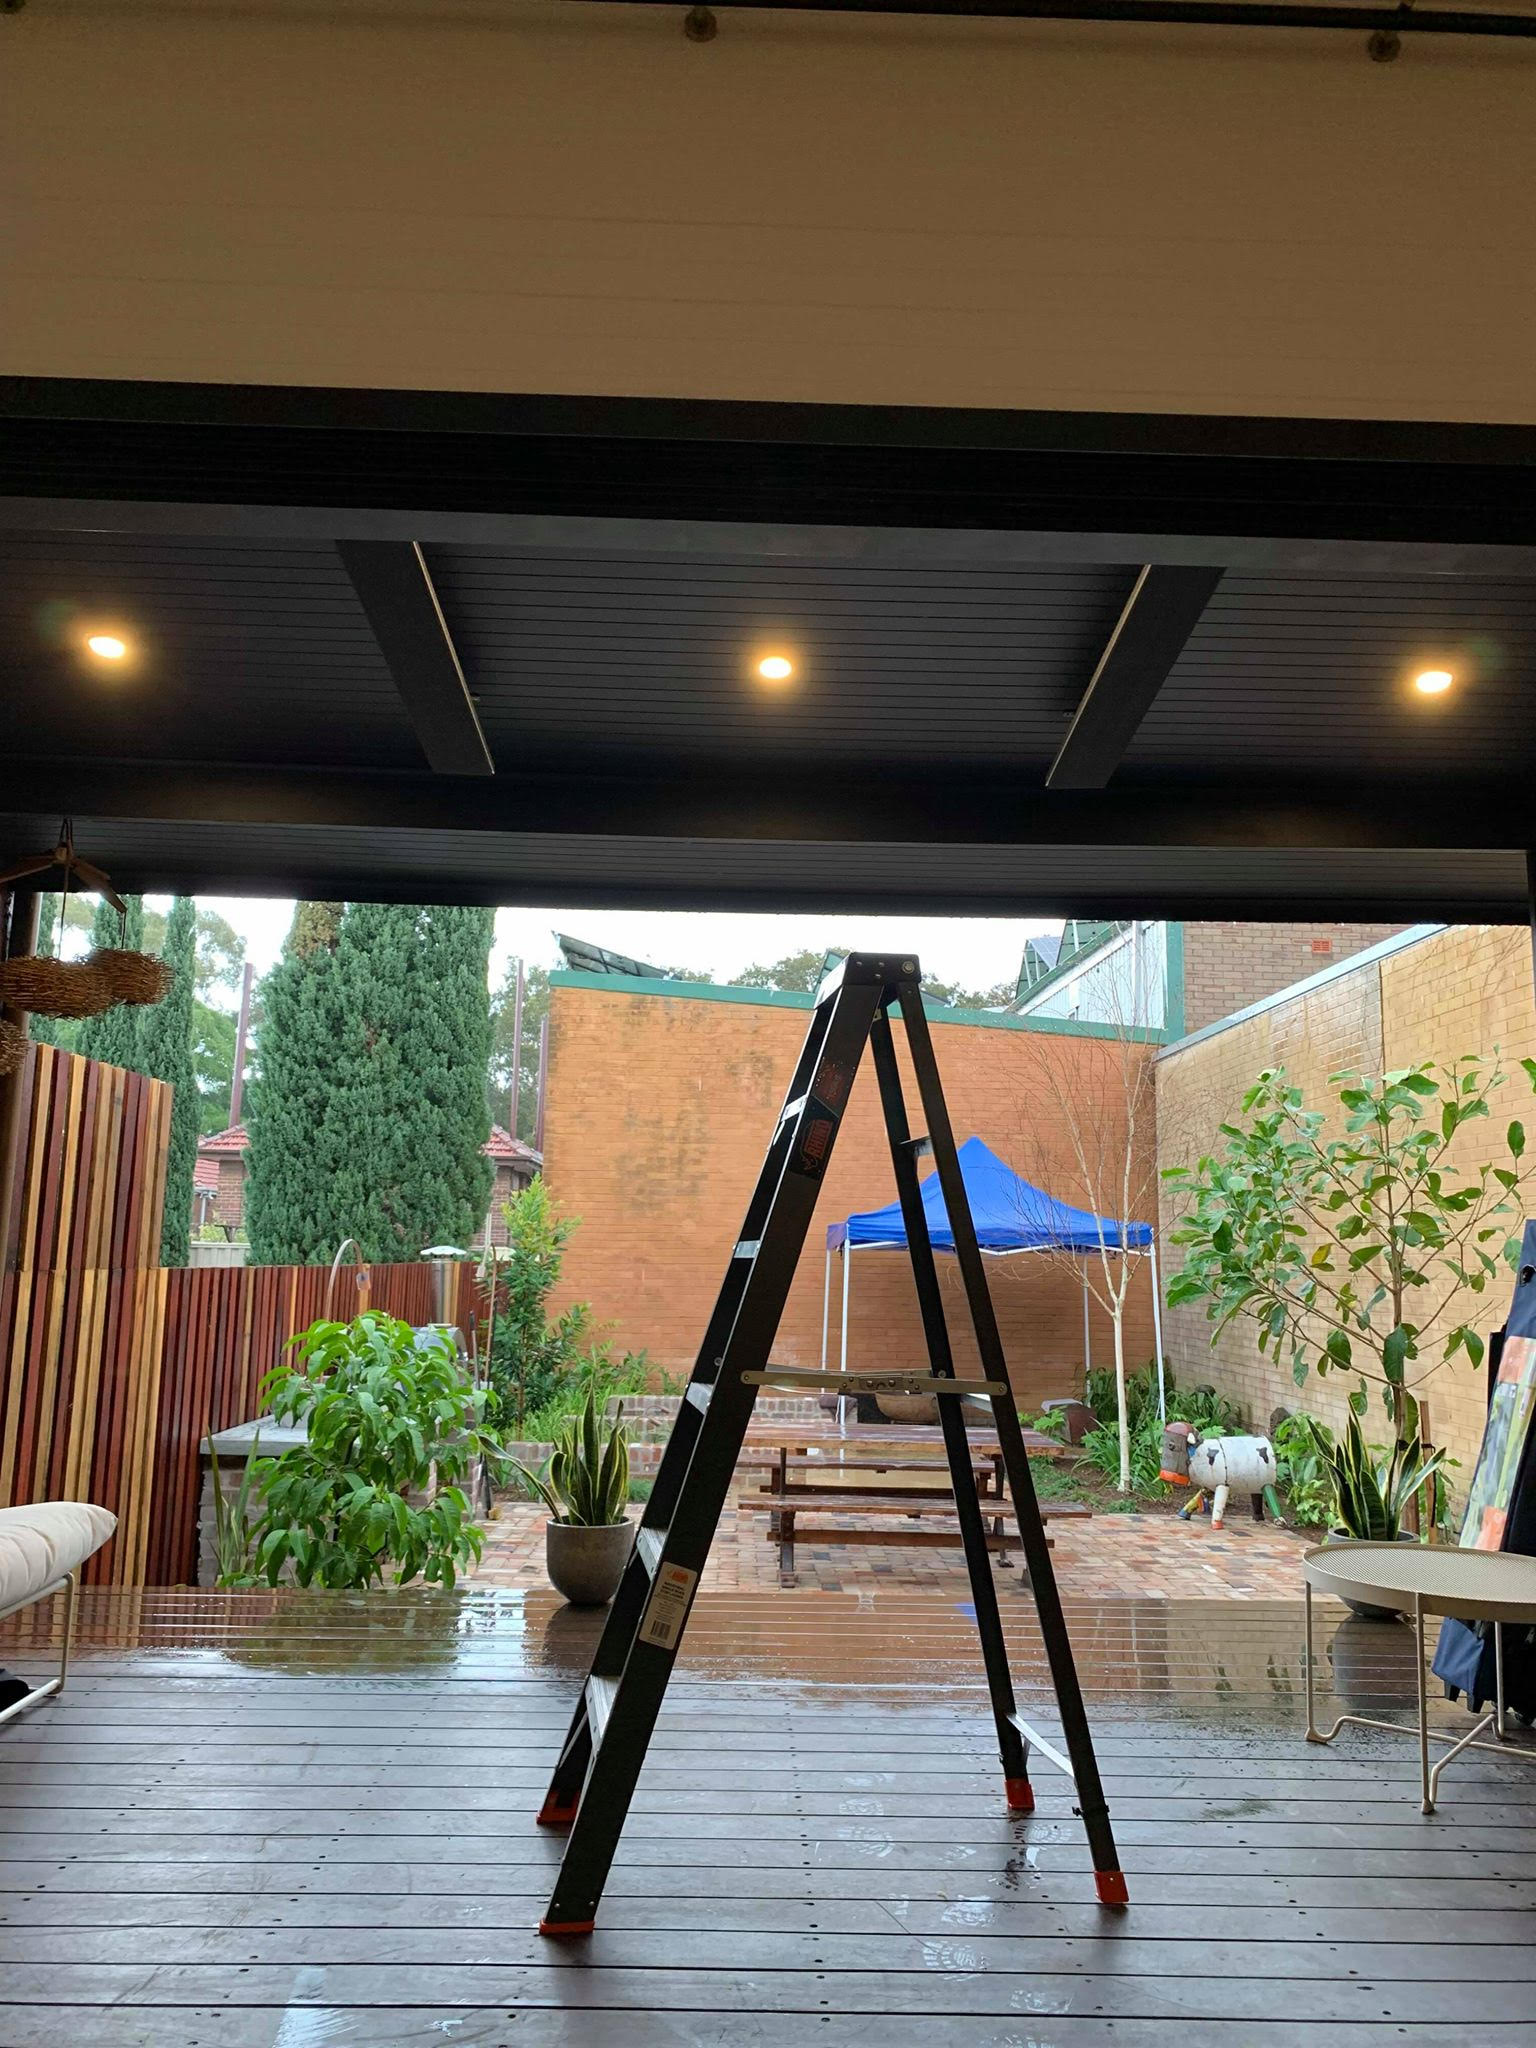 LED Installation - Sydney Electrician Work